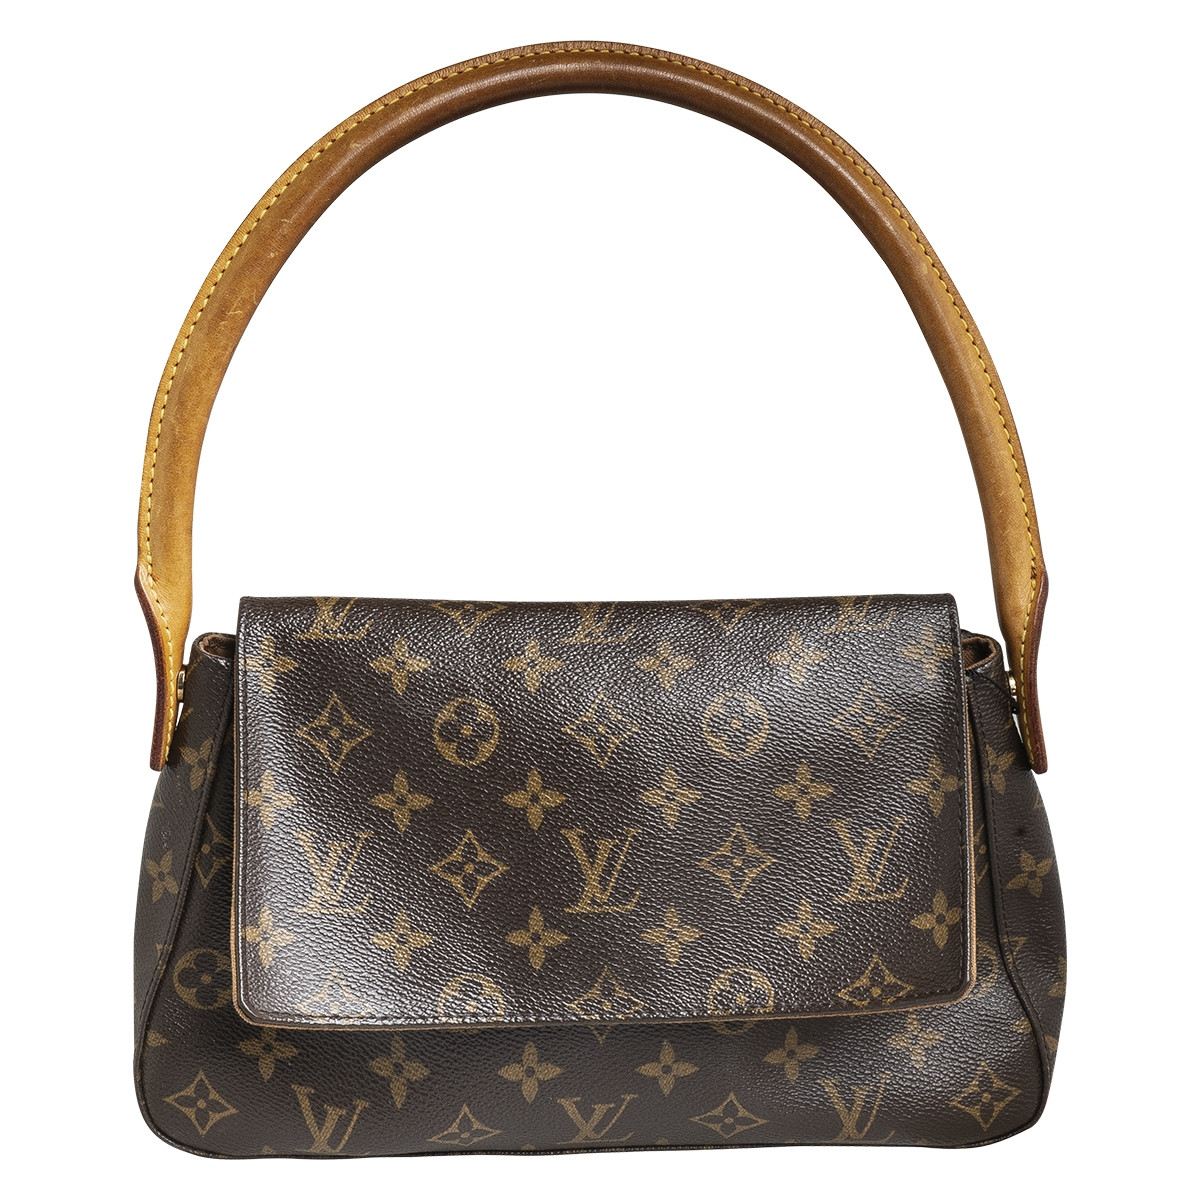 Vintage Louis Vuitton Monogram Mini Loop Shoulder Bag